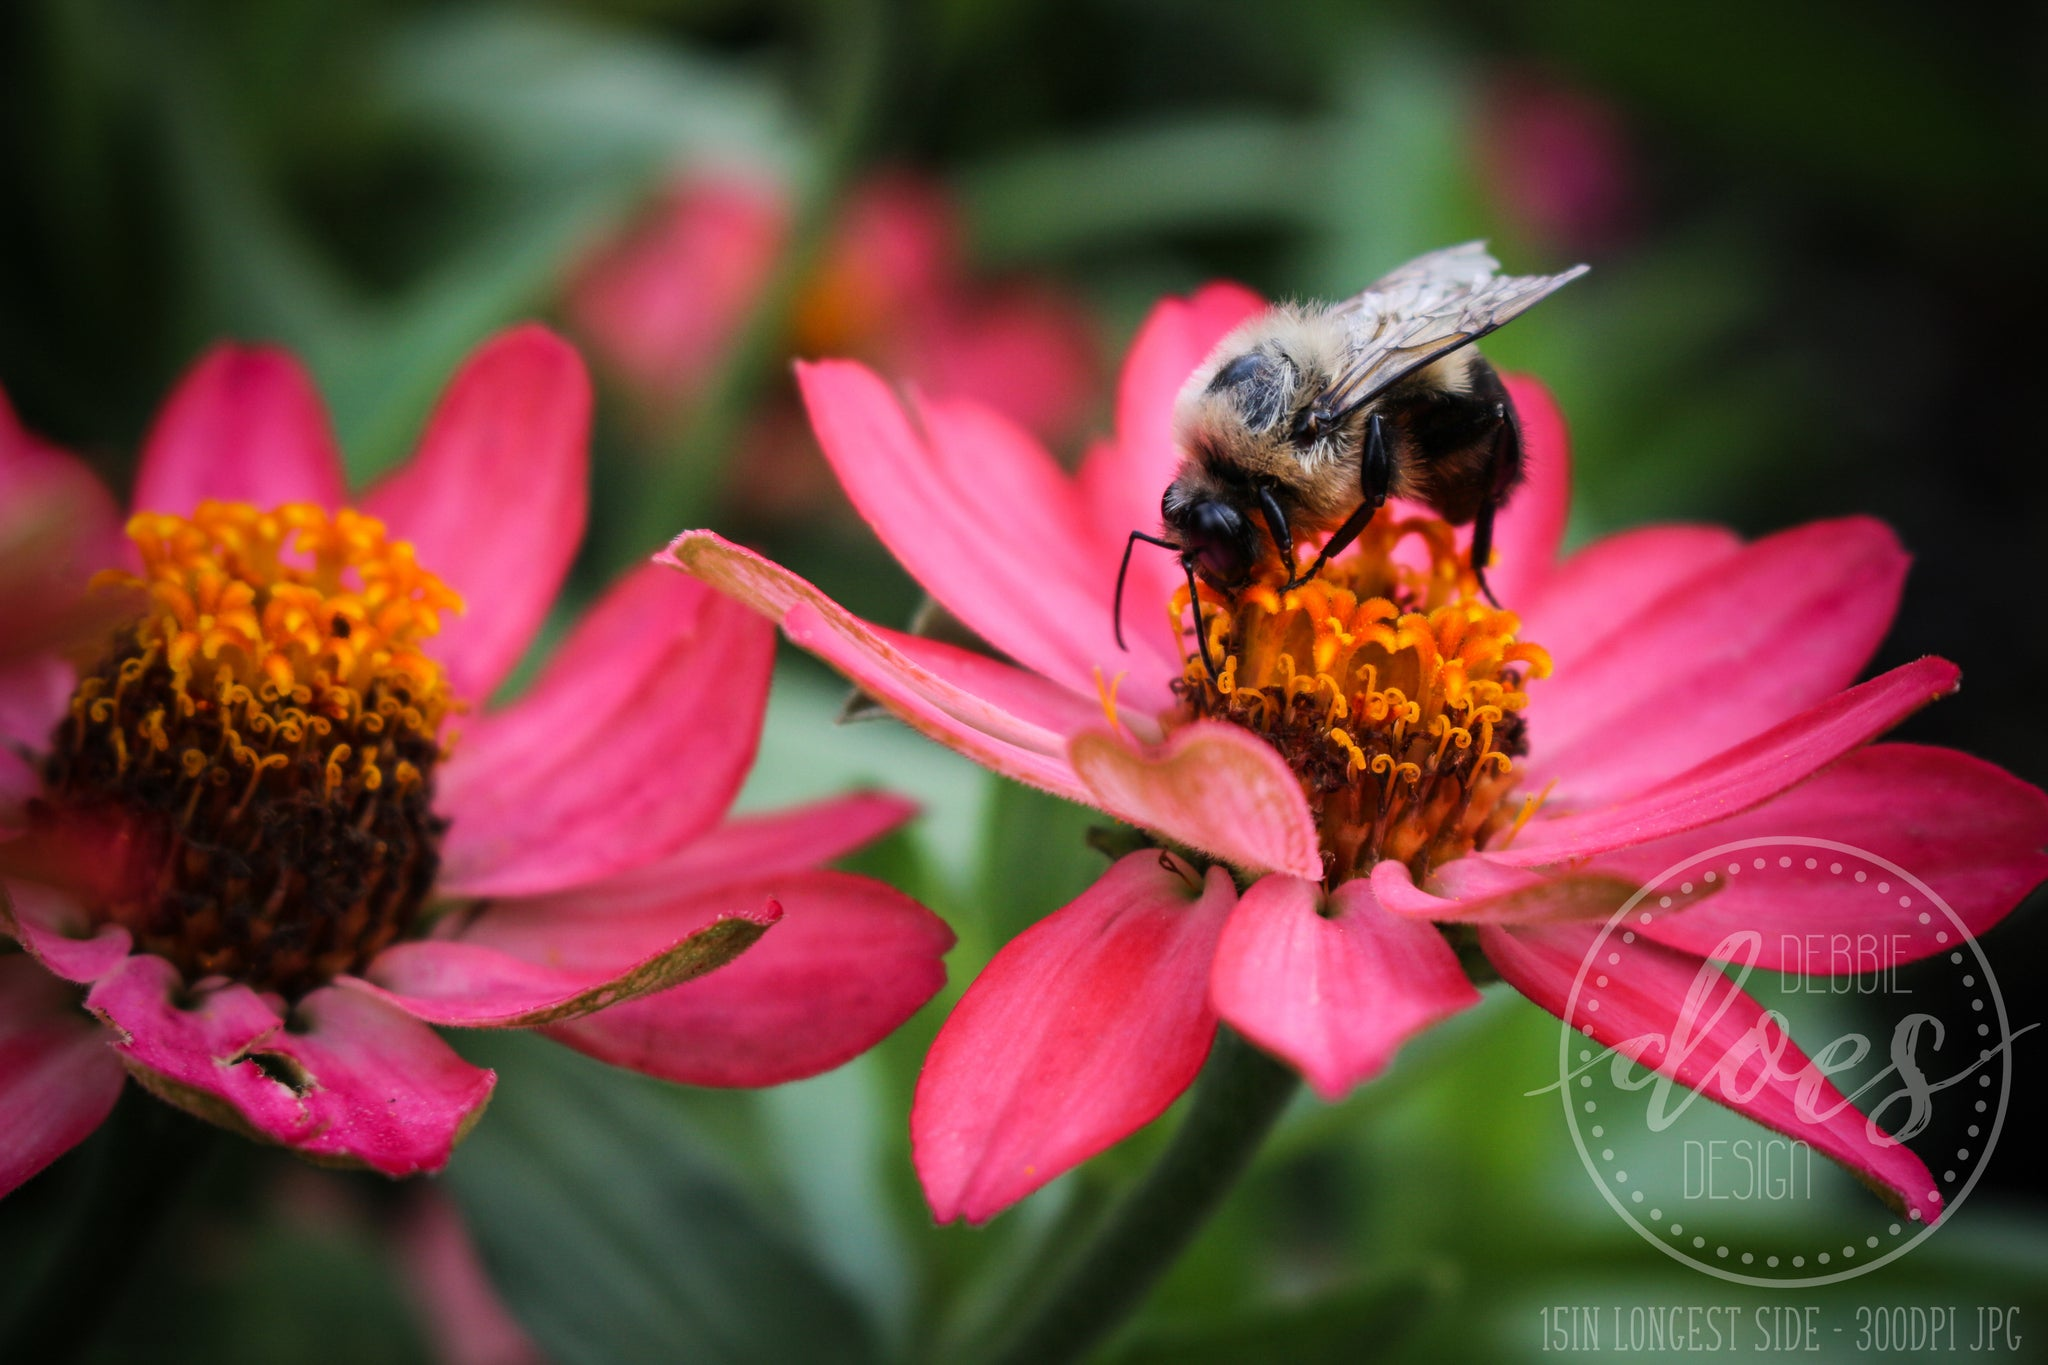 Busy Bumble Bee on Flower - High Res Digital Photograph